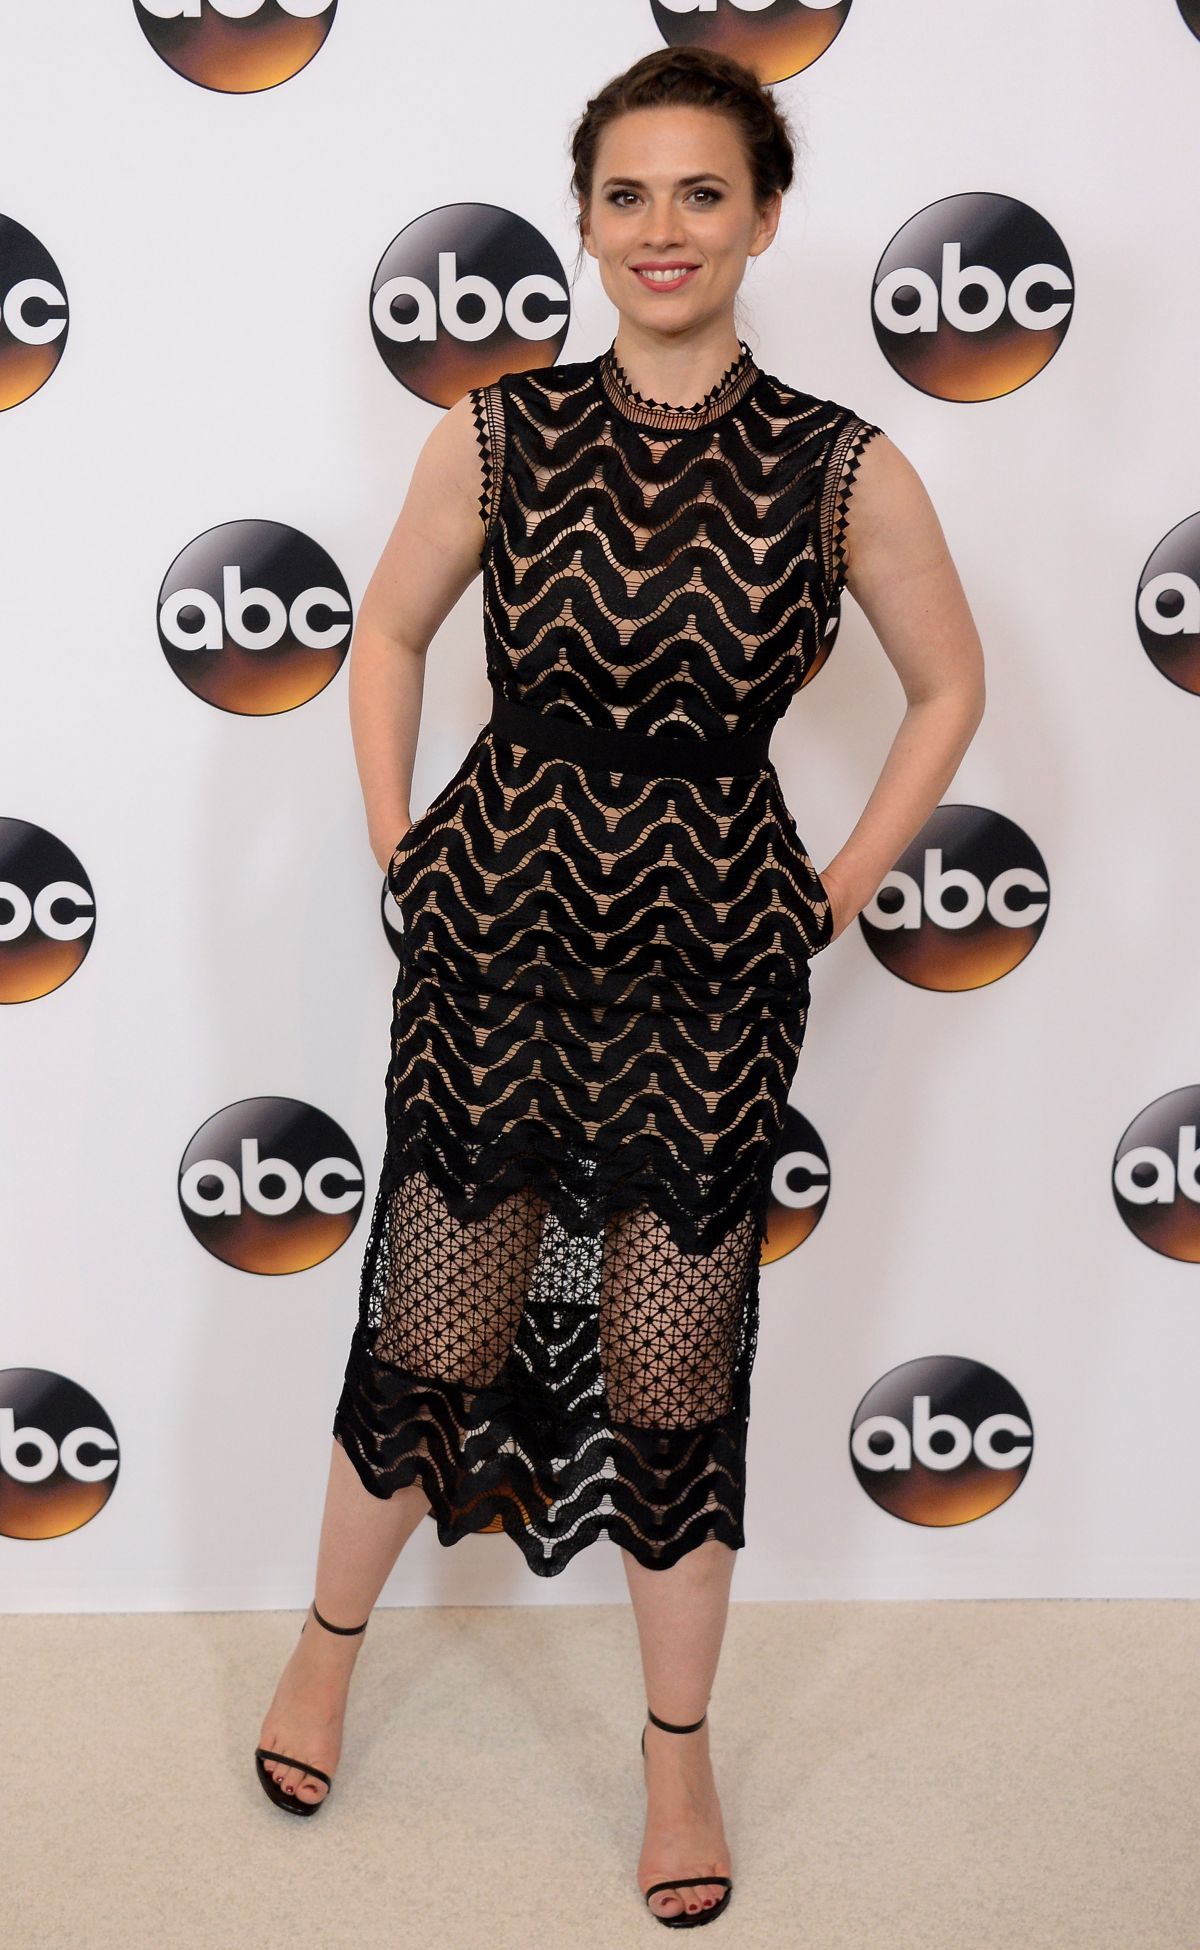 HAYLEY ARWELL at Disney/ABC Television TCA Summer Press Tour in Beverly Hills 08/04/2016